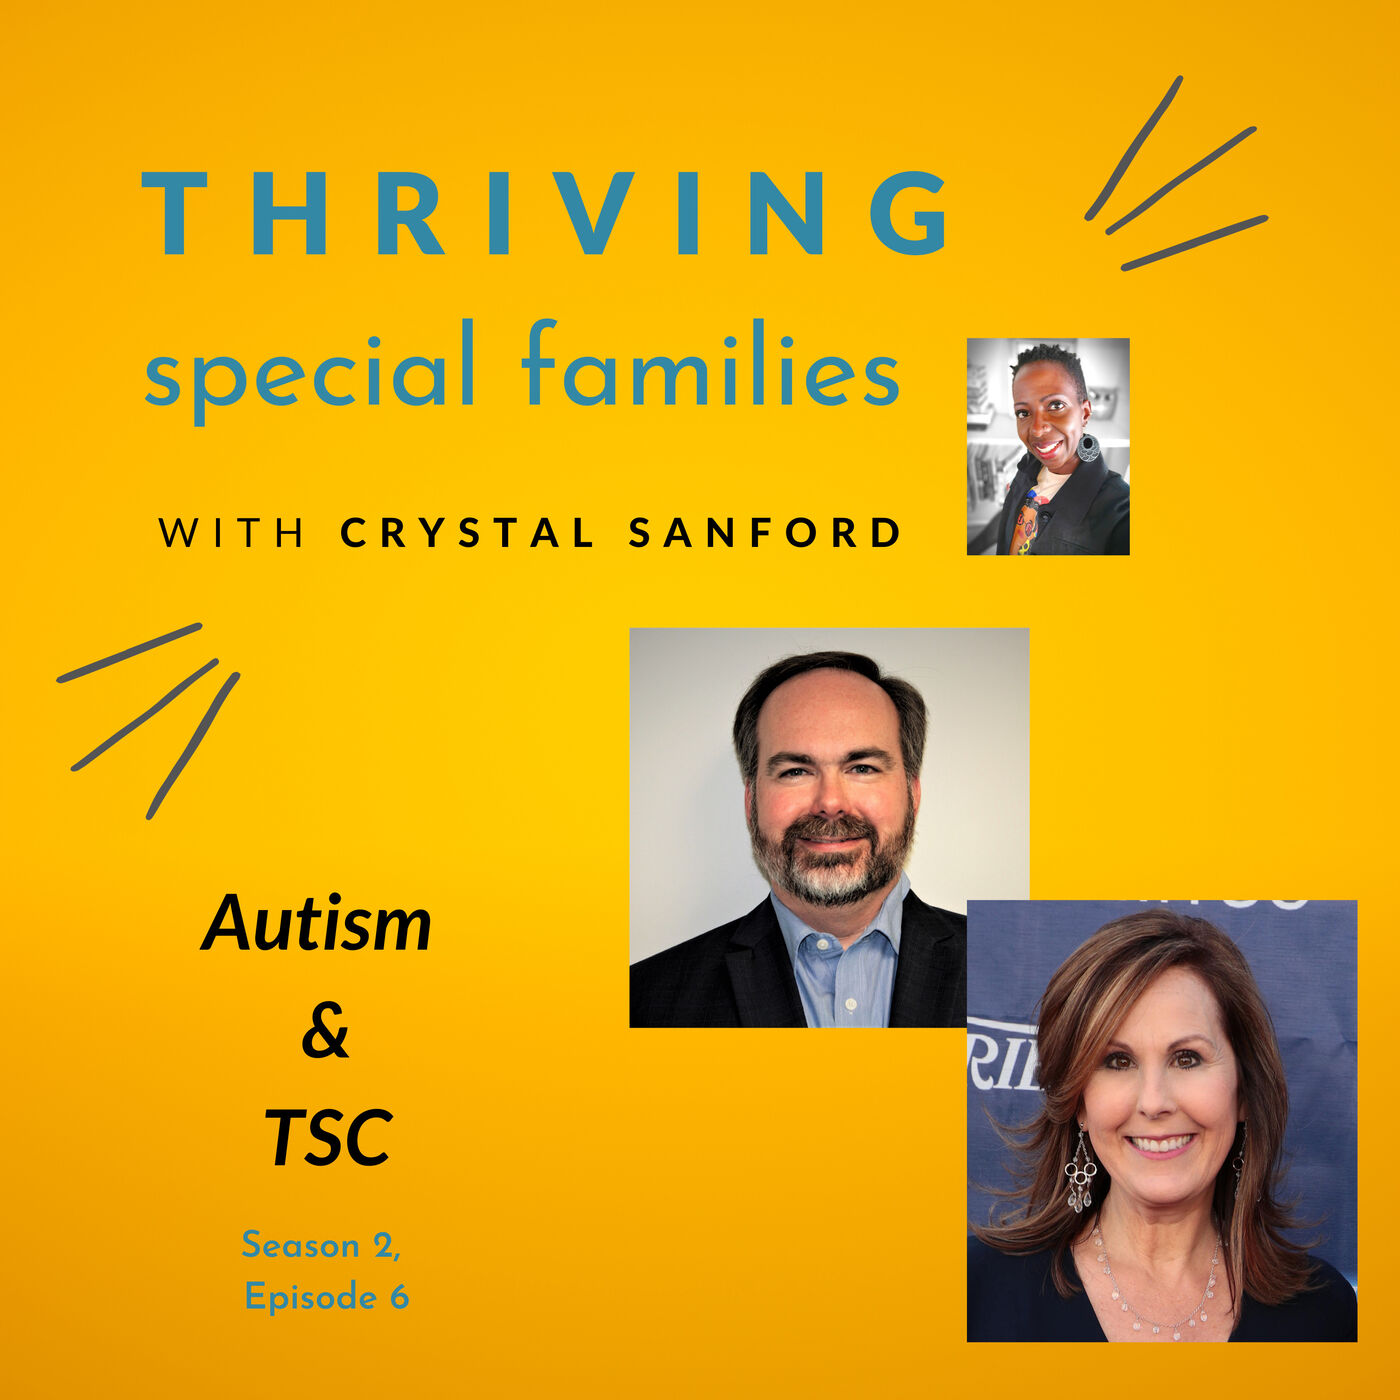 Autism and TSC